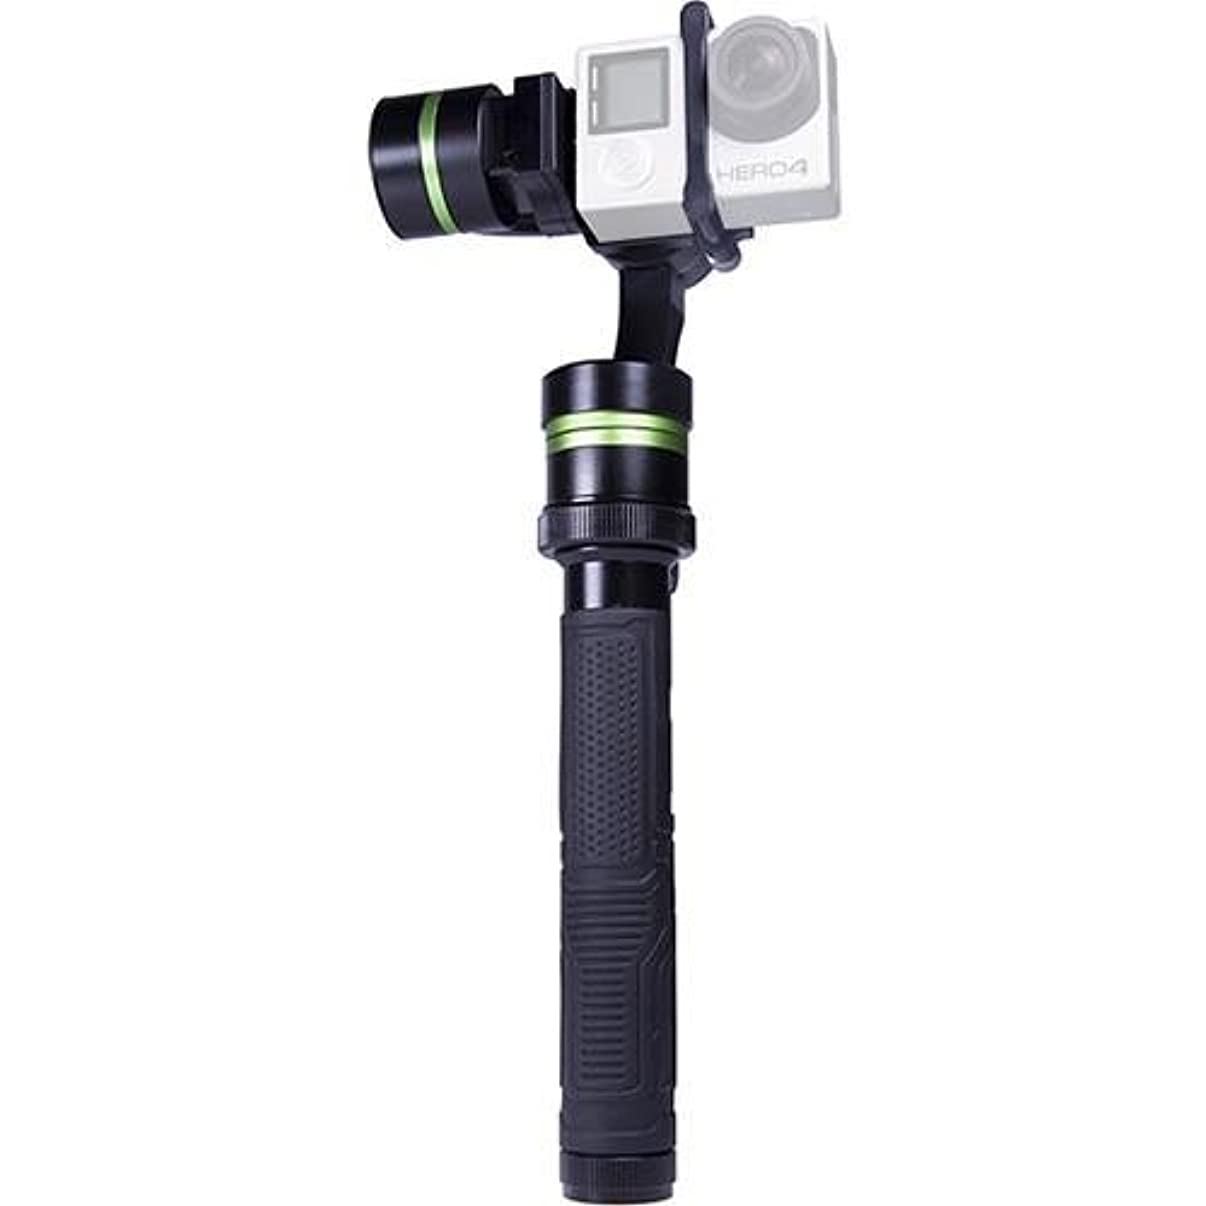 LanParte LA3D-2 3-Axis Handheld Gimbal 360 Pano Function for GoPro Xiaomi 4K and More Action Cameras